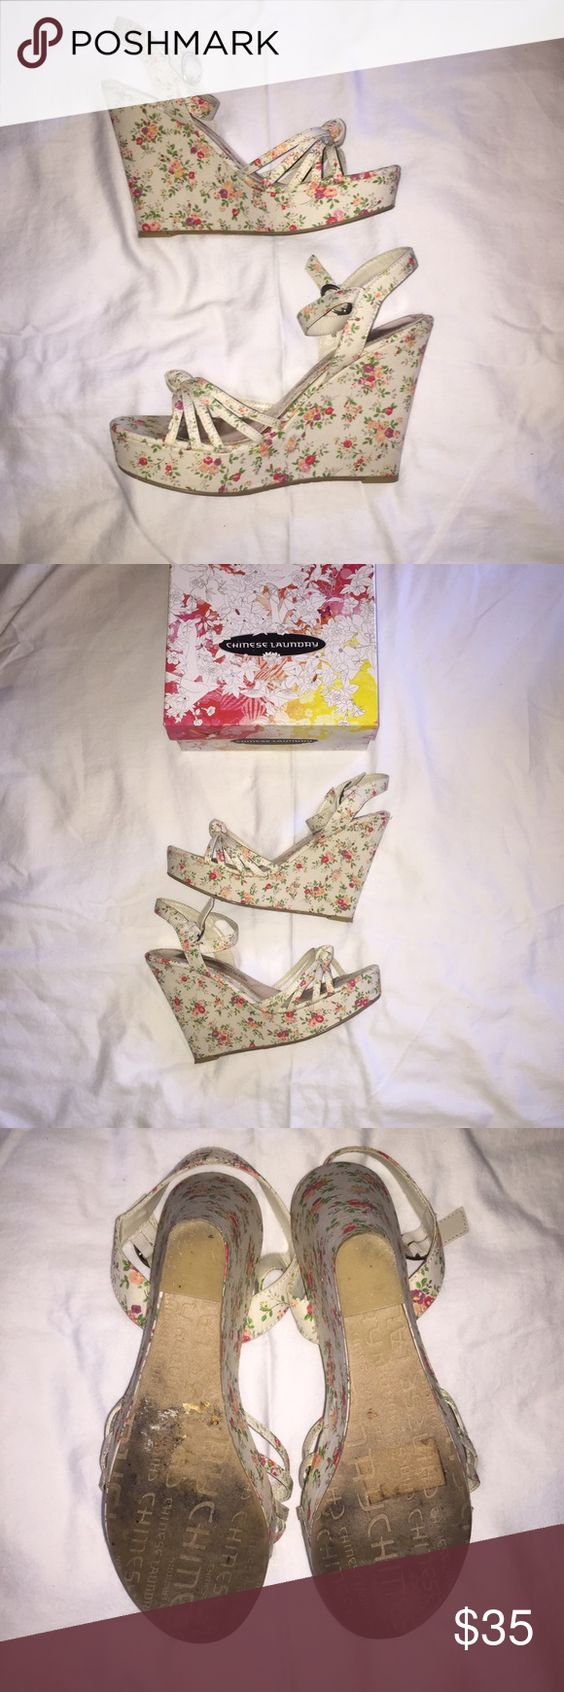 """NIB Chinese Laundry Desert Queen Floral Wedges NIB Chinese Laundry Desert Queen Floral Wedges in size 9.5 - they seem narrow like most CL shoes & I bought them for my size 9 feet.  Bought as DSW & never worn but they were tried on a lot in be store (see bottoms in pic 3) with slight toe marks on them as well.  Cream colored canvas with printed small floral, freaking adorable!  Wedge is 5"""" tall with platform about 1.25"""". Chinese Laundry Shoes Wedges"""